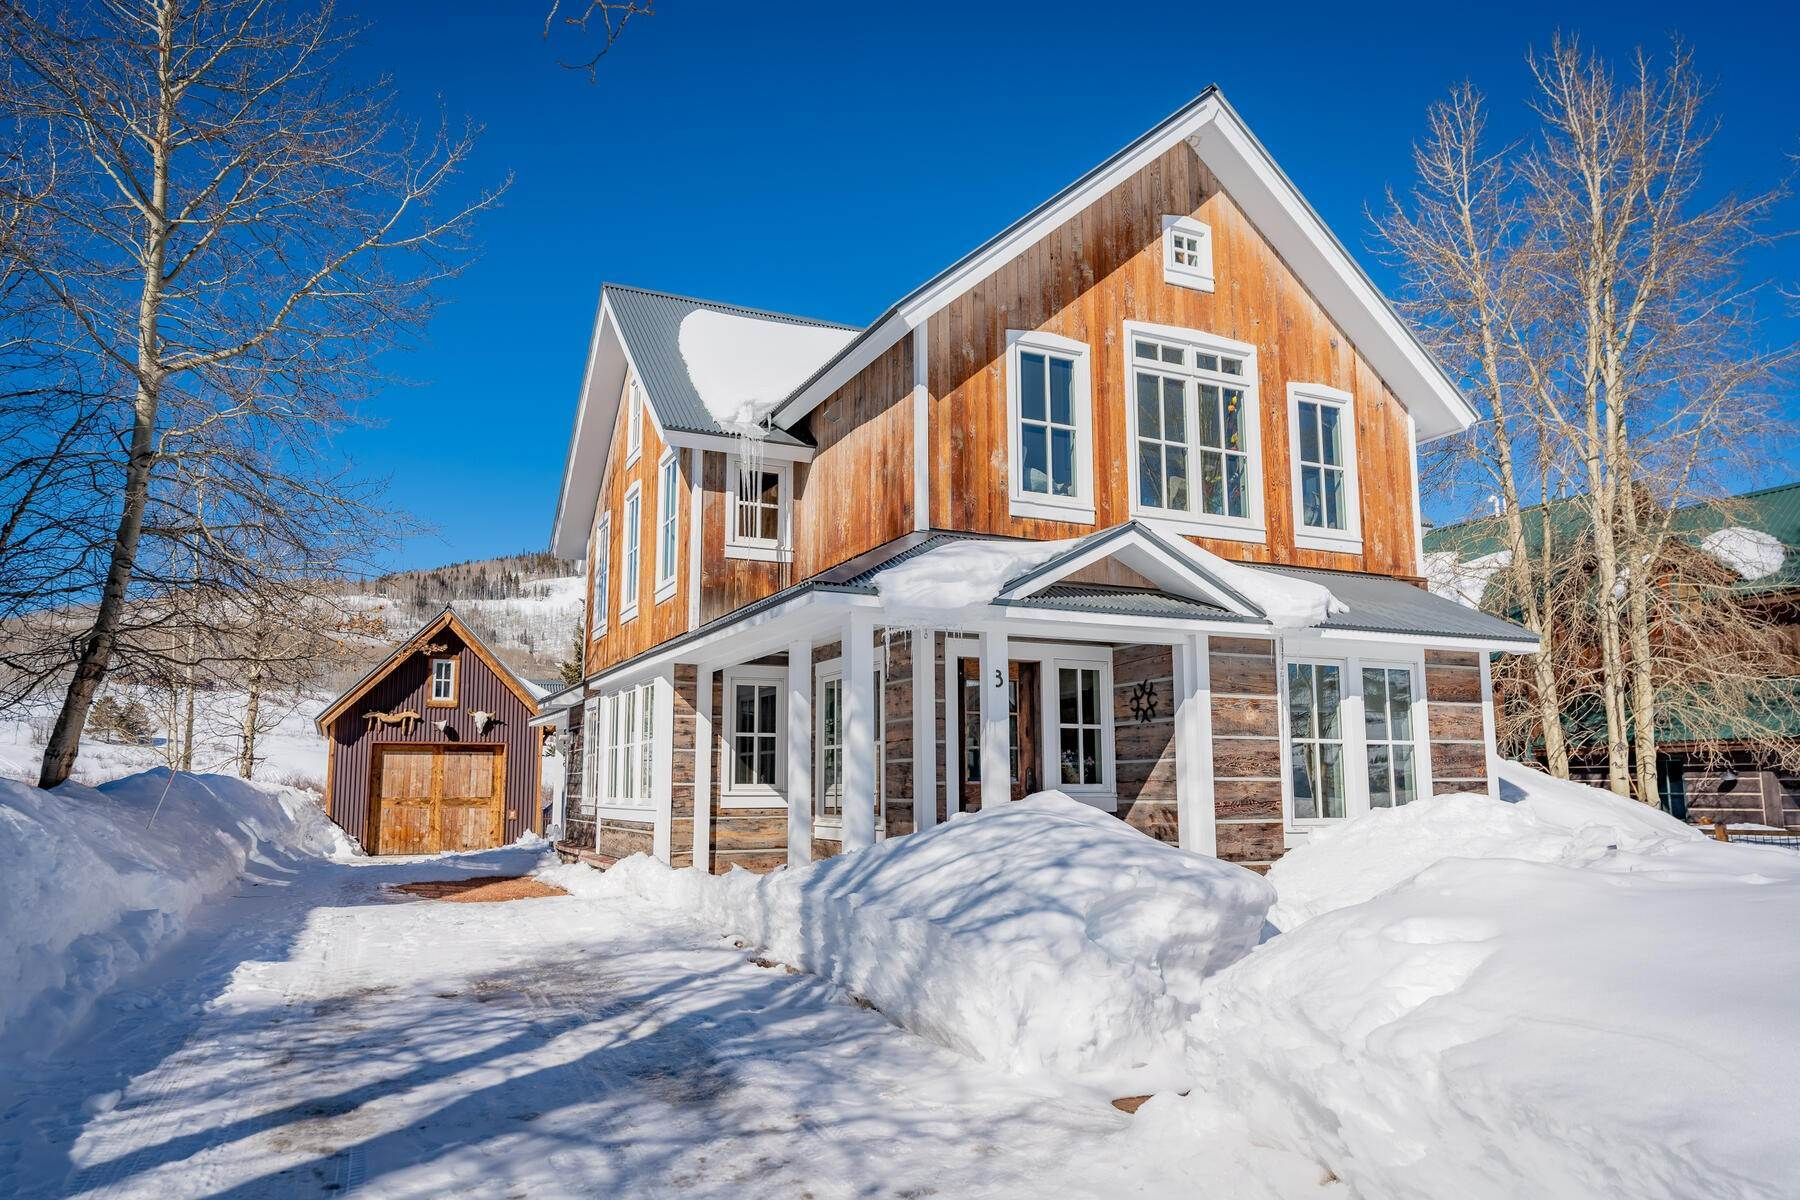 Single Family Homes for Sale at Custom Home in the Coveted West Side of Crested Butte 3 Ruth's Road Crested Butte, Colorado 81224 United States